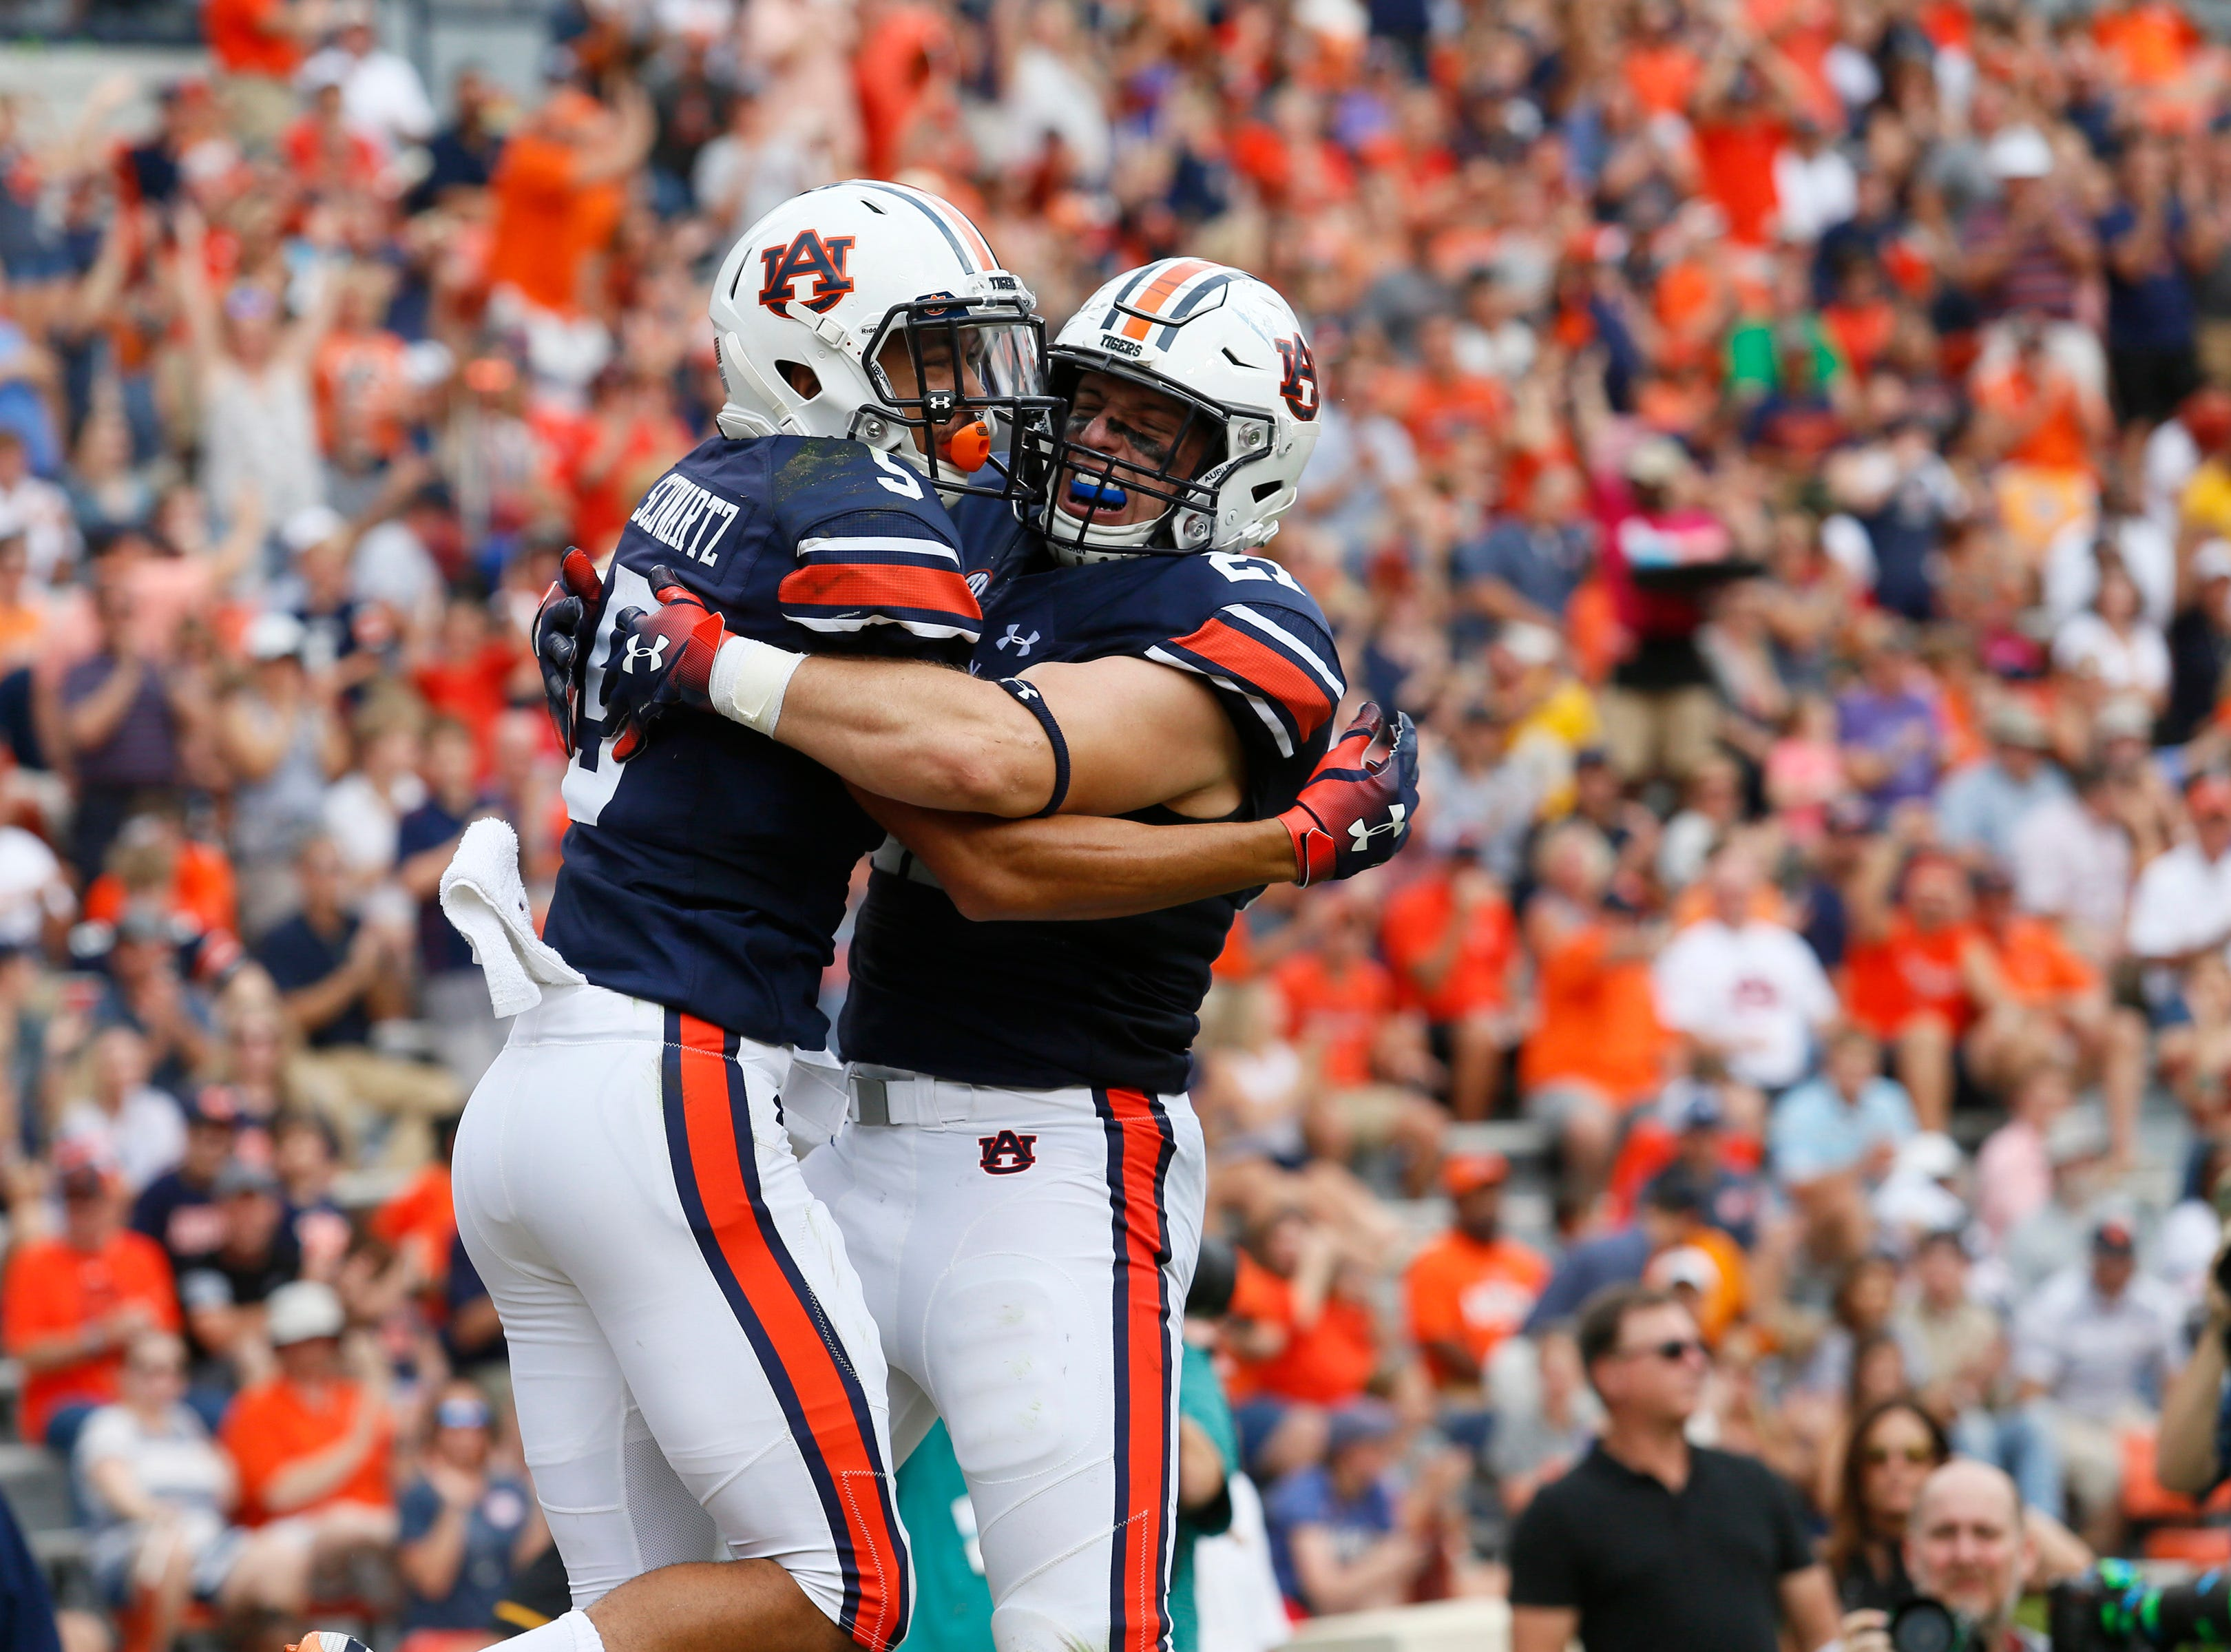 Sep 29, 2018; Auburn, AL, USA; Auburn Tigers receiver Anthony Schwartz (5) celebrates with fullback Chandler Cox (27) after scoring a touchdown against the Southern Miss Golden Eagles during the second quarter at Jordan-Hare Stadium. Mandatory Credit: John Reed-USA TODAY Sports